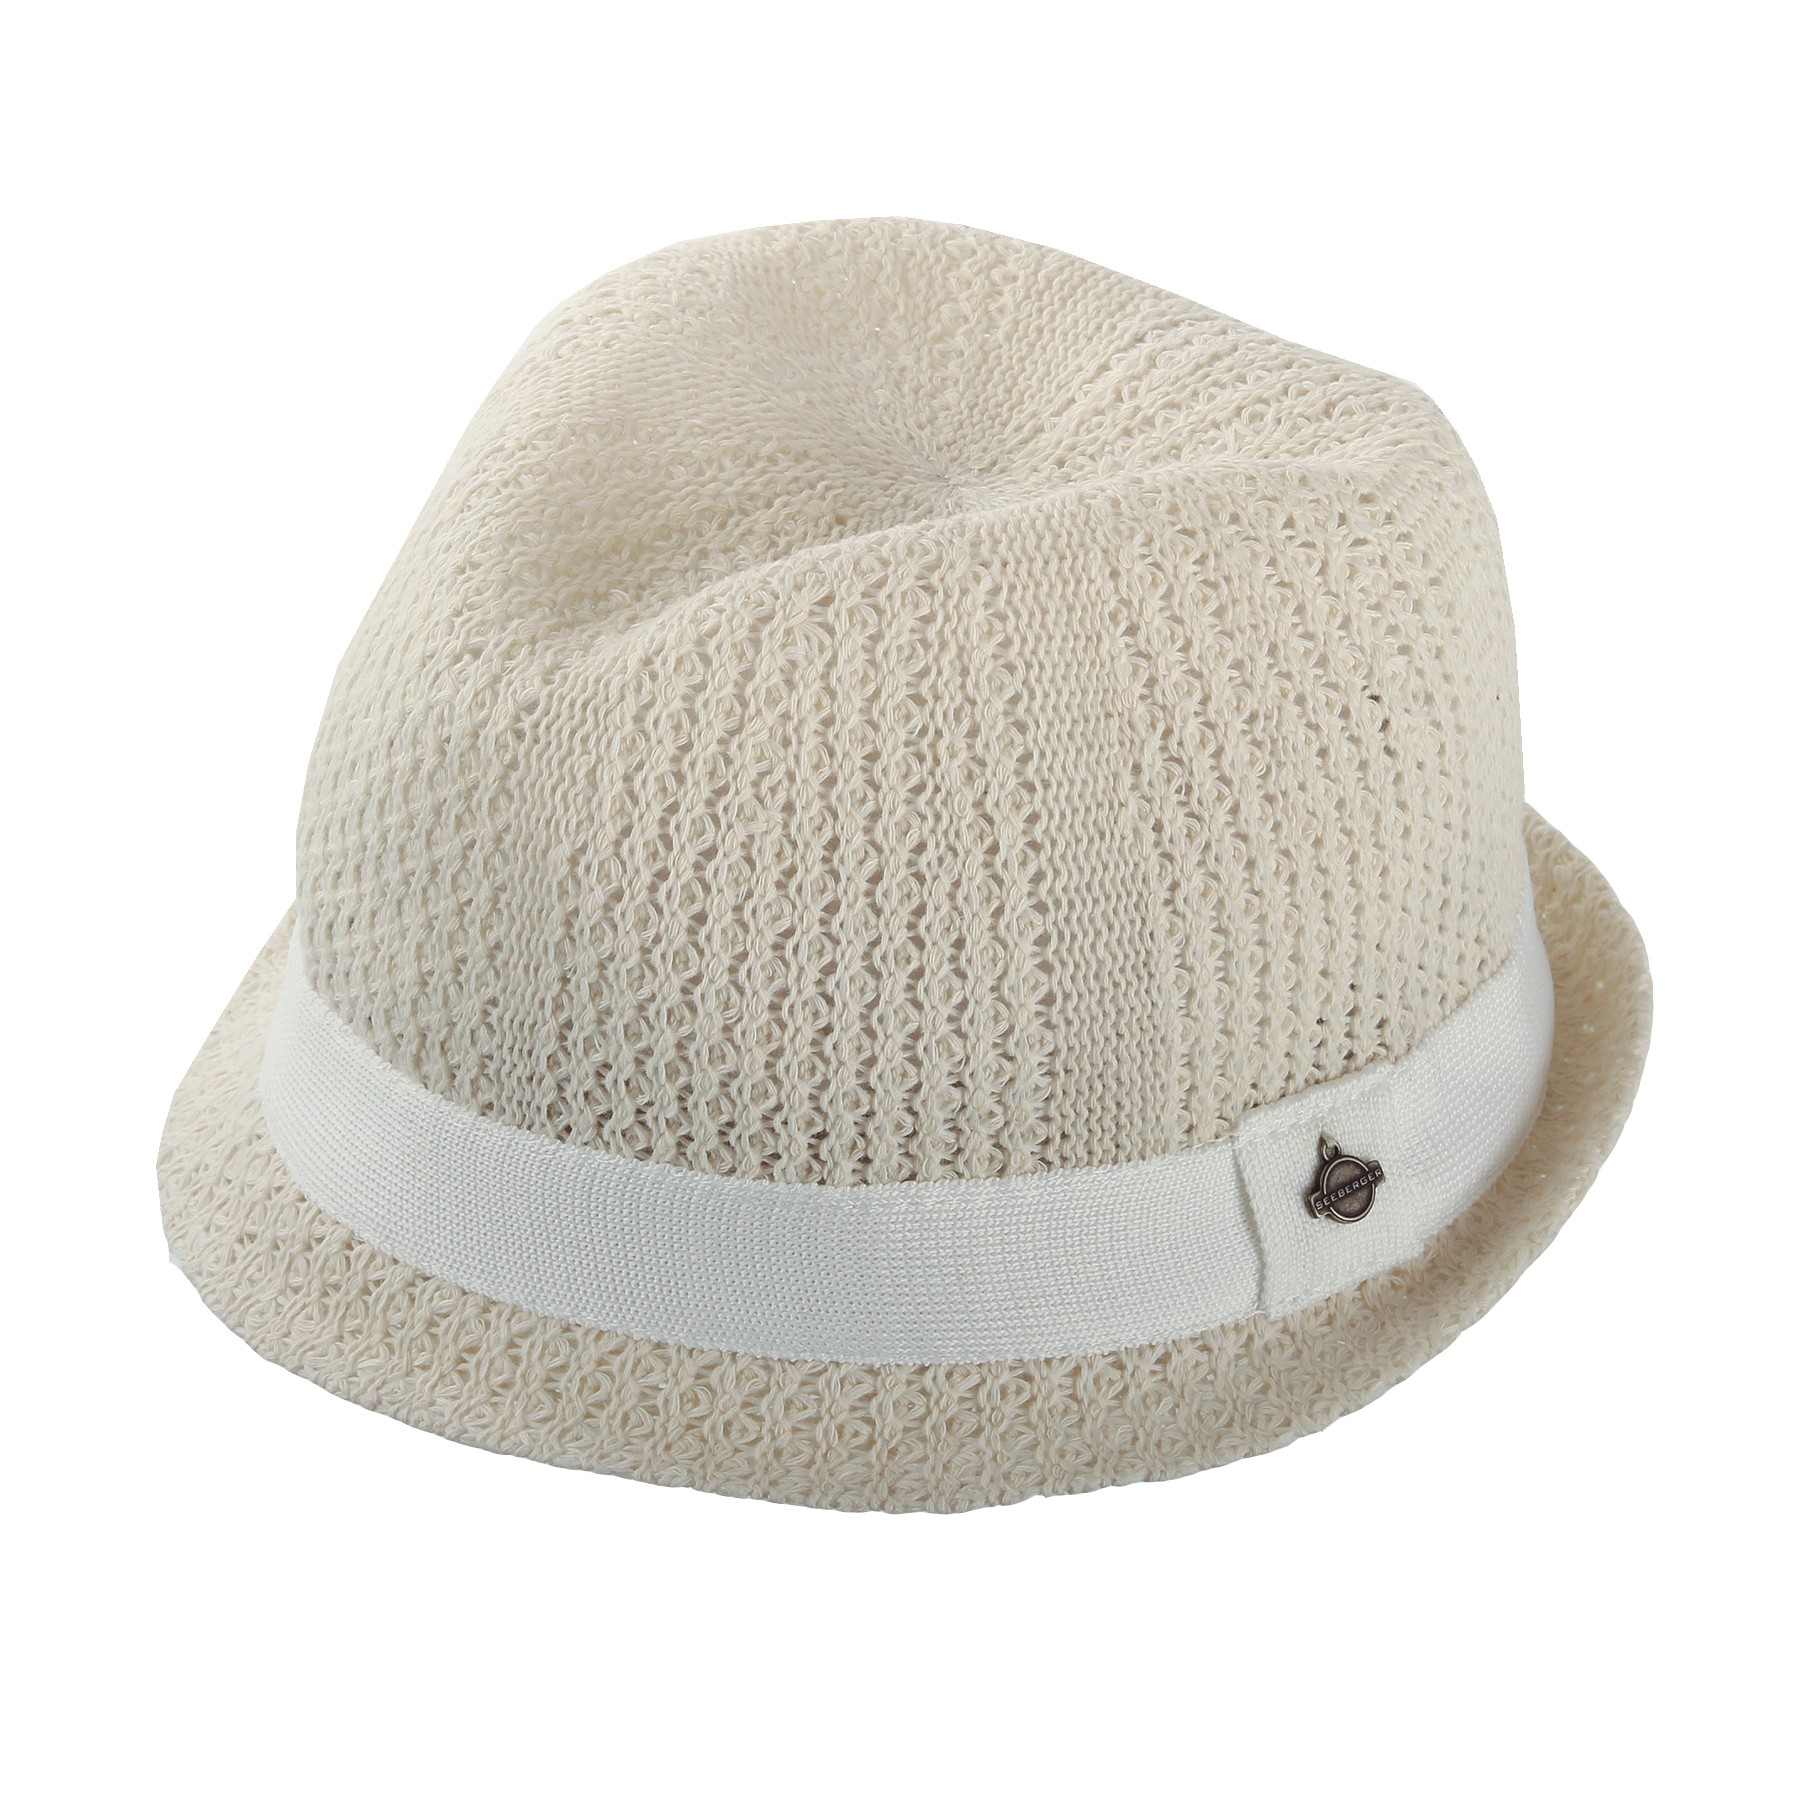 SEEBERGER Hut Strick-Trilby, Umfang 54 cm Bild https://cdn03.plentymarkets.com/zsy4vjx32p87/item/images/4919/full/4050655919352-ama-01.JPG